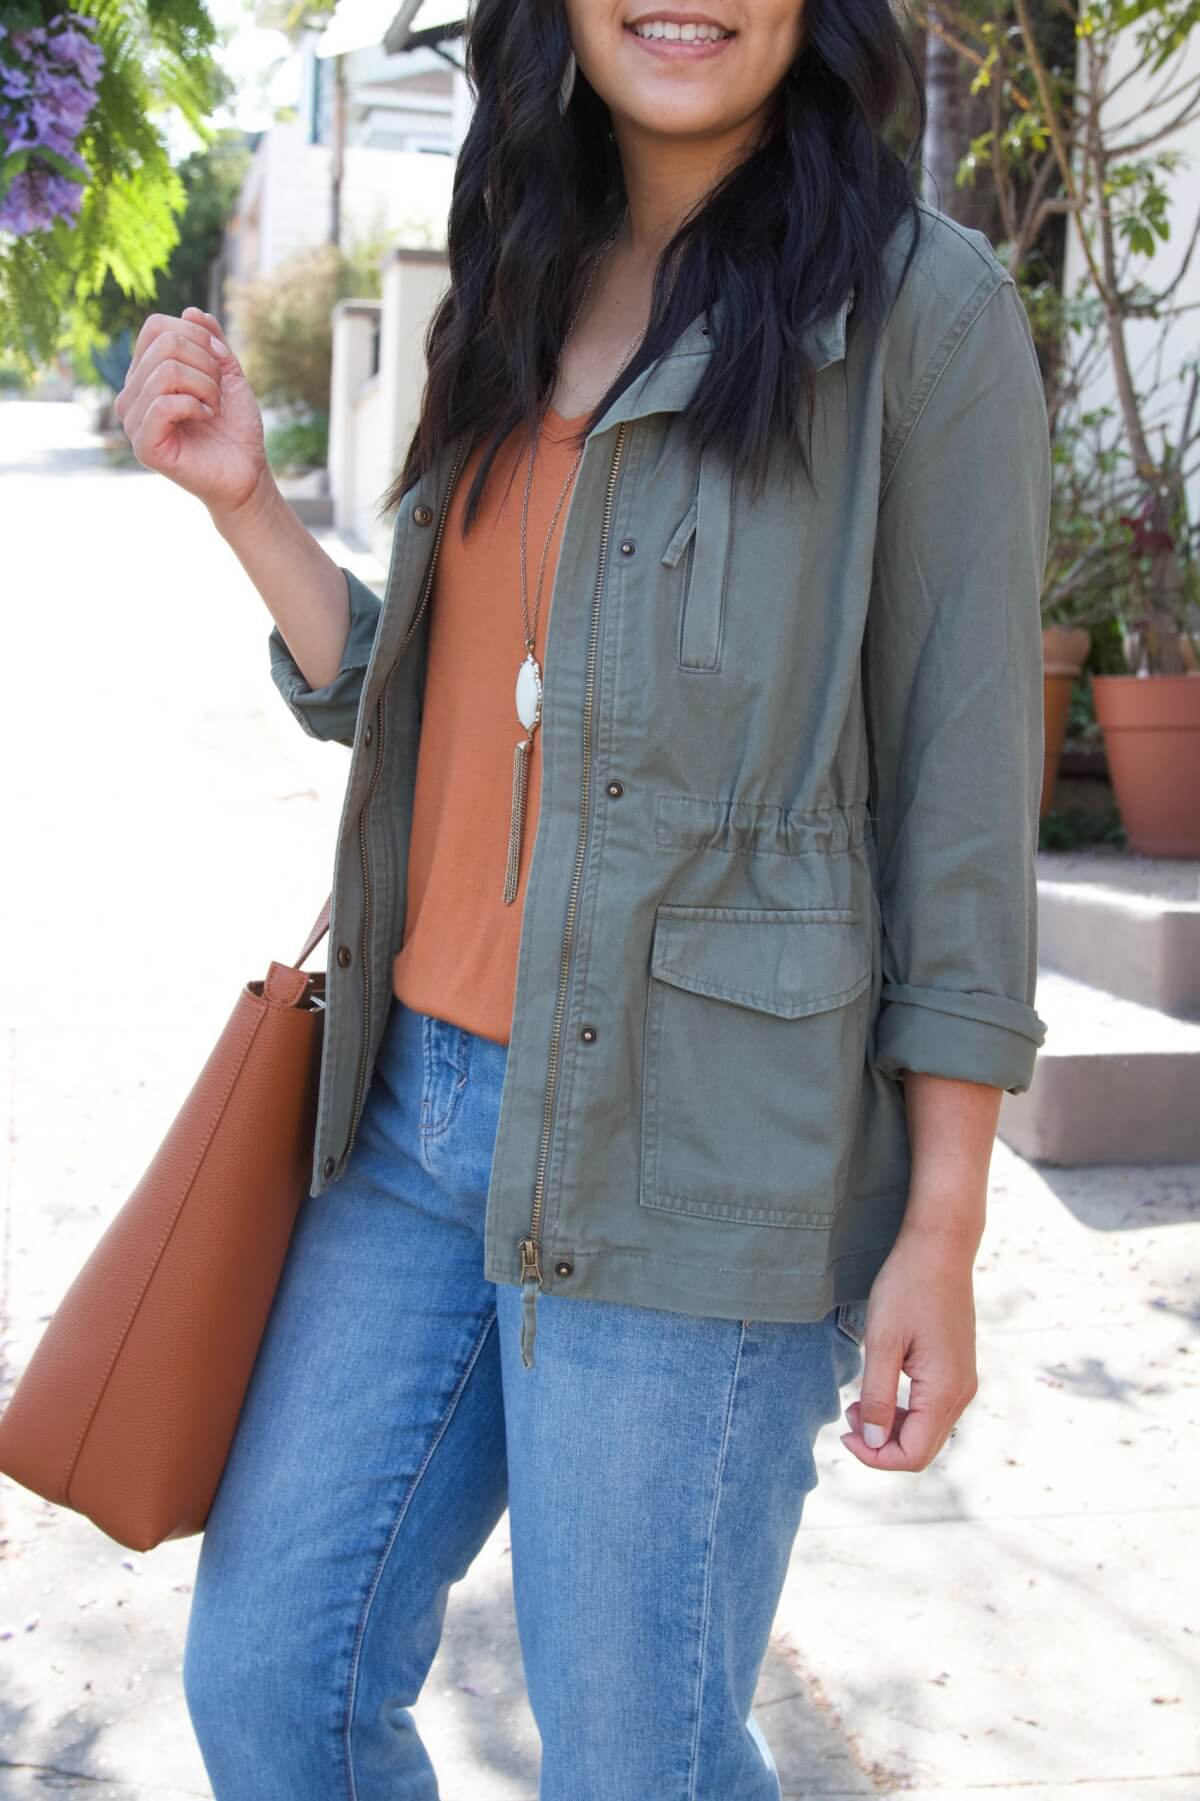 Casual Fall Outfit Summer to Early Fall Transition: olive utility jacket + pumpkin orange top + light denim + pendant necklace + tan tote close up